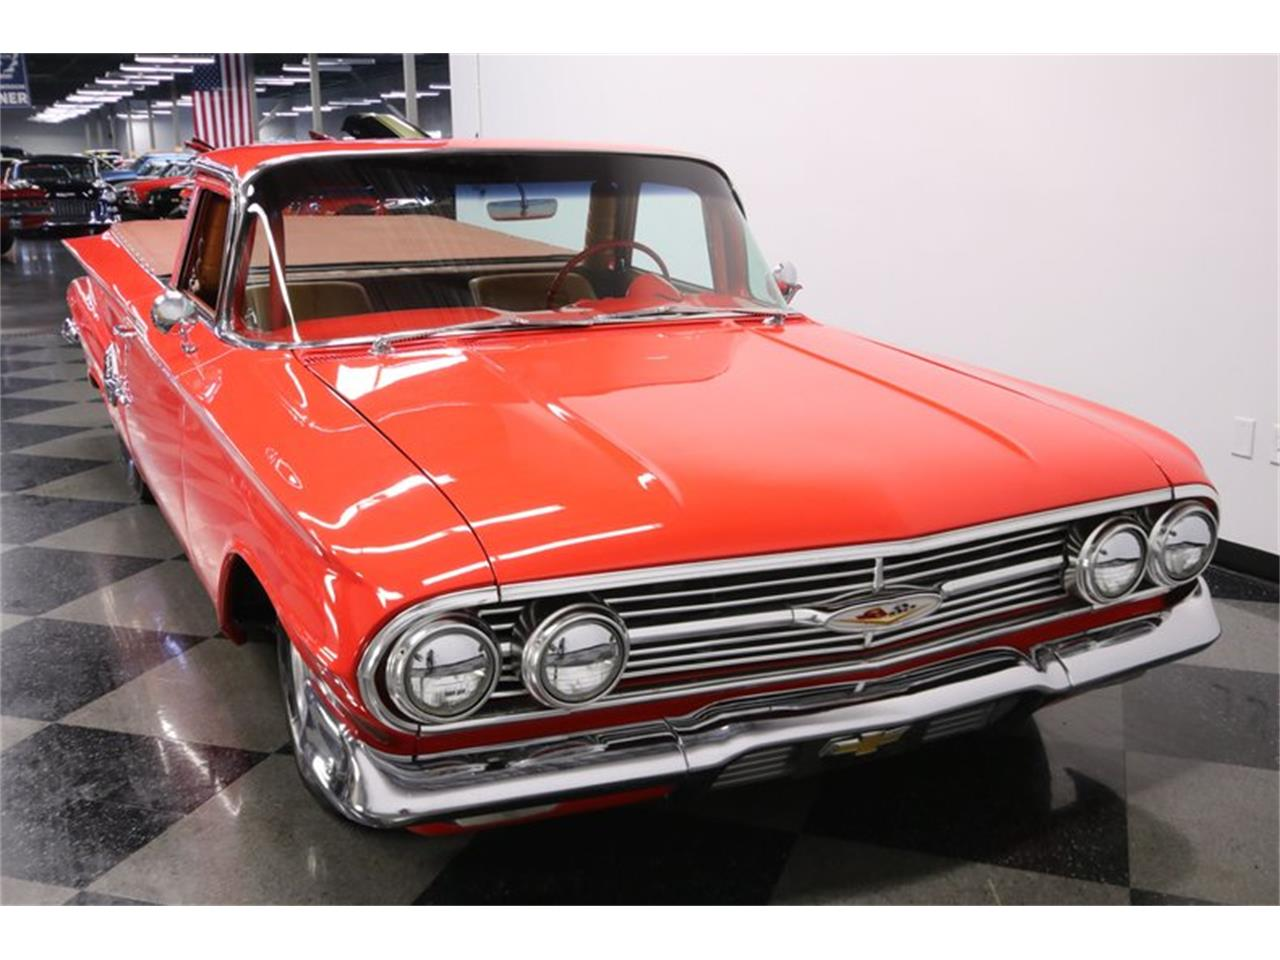 1960 Chevrolet El Camino (CC-1275913) for sale in Lutz, Florida